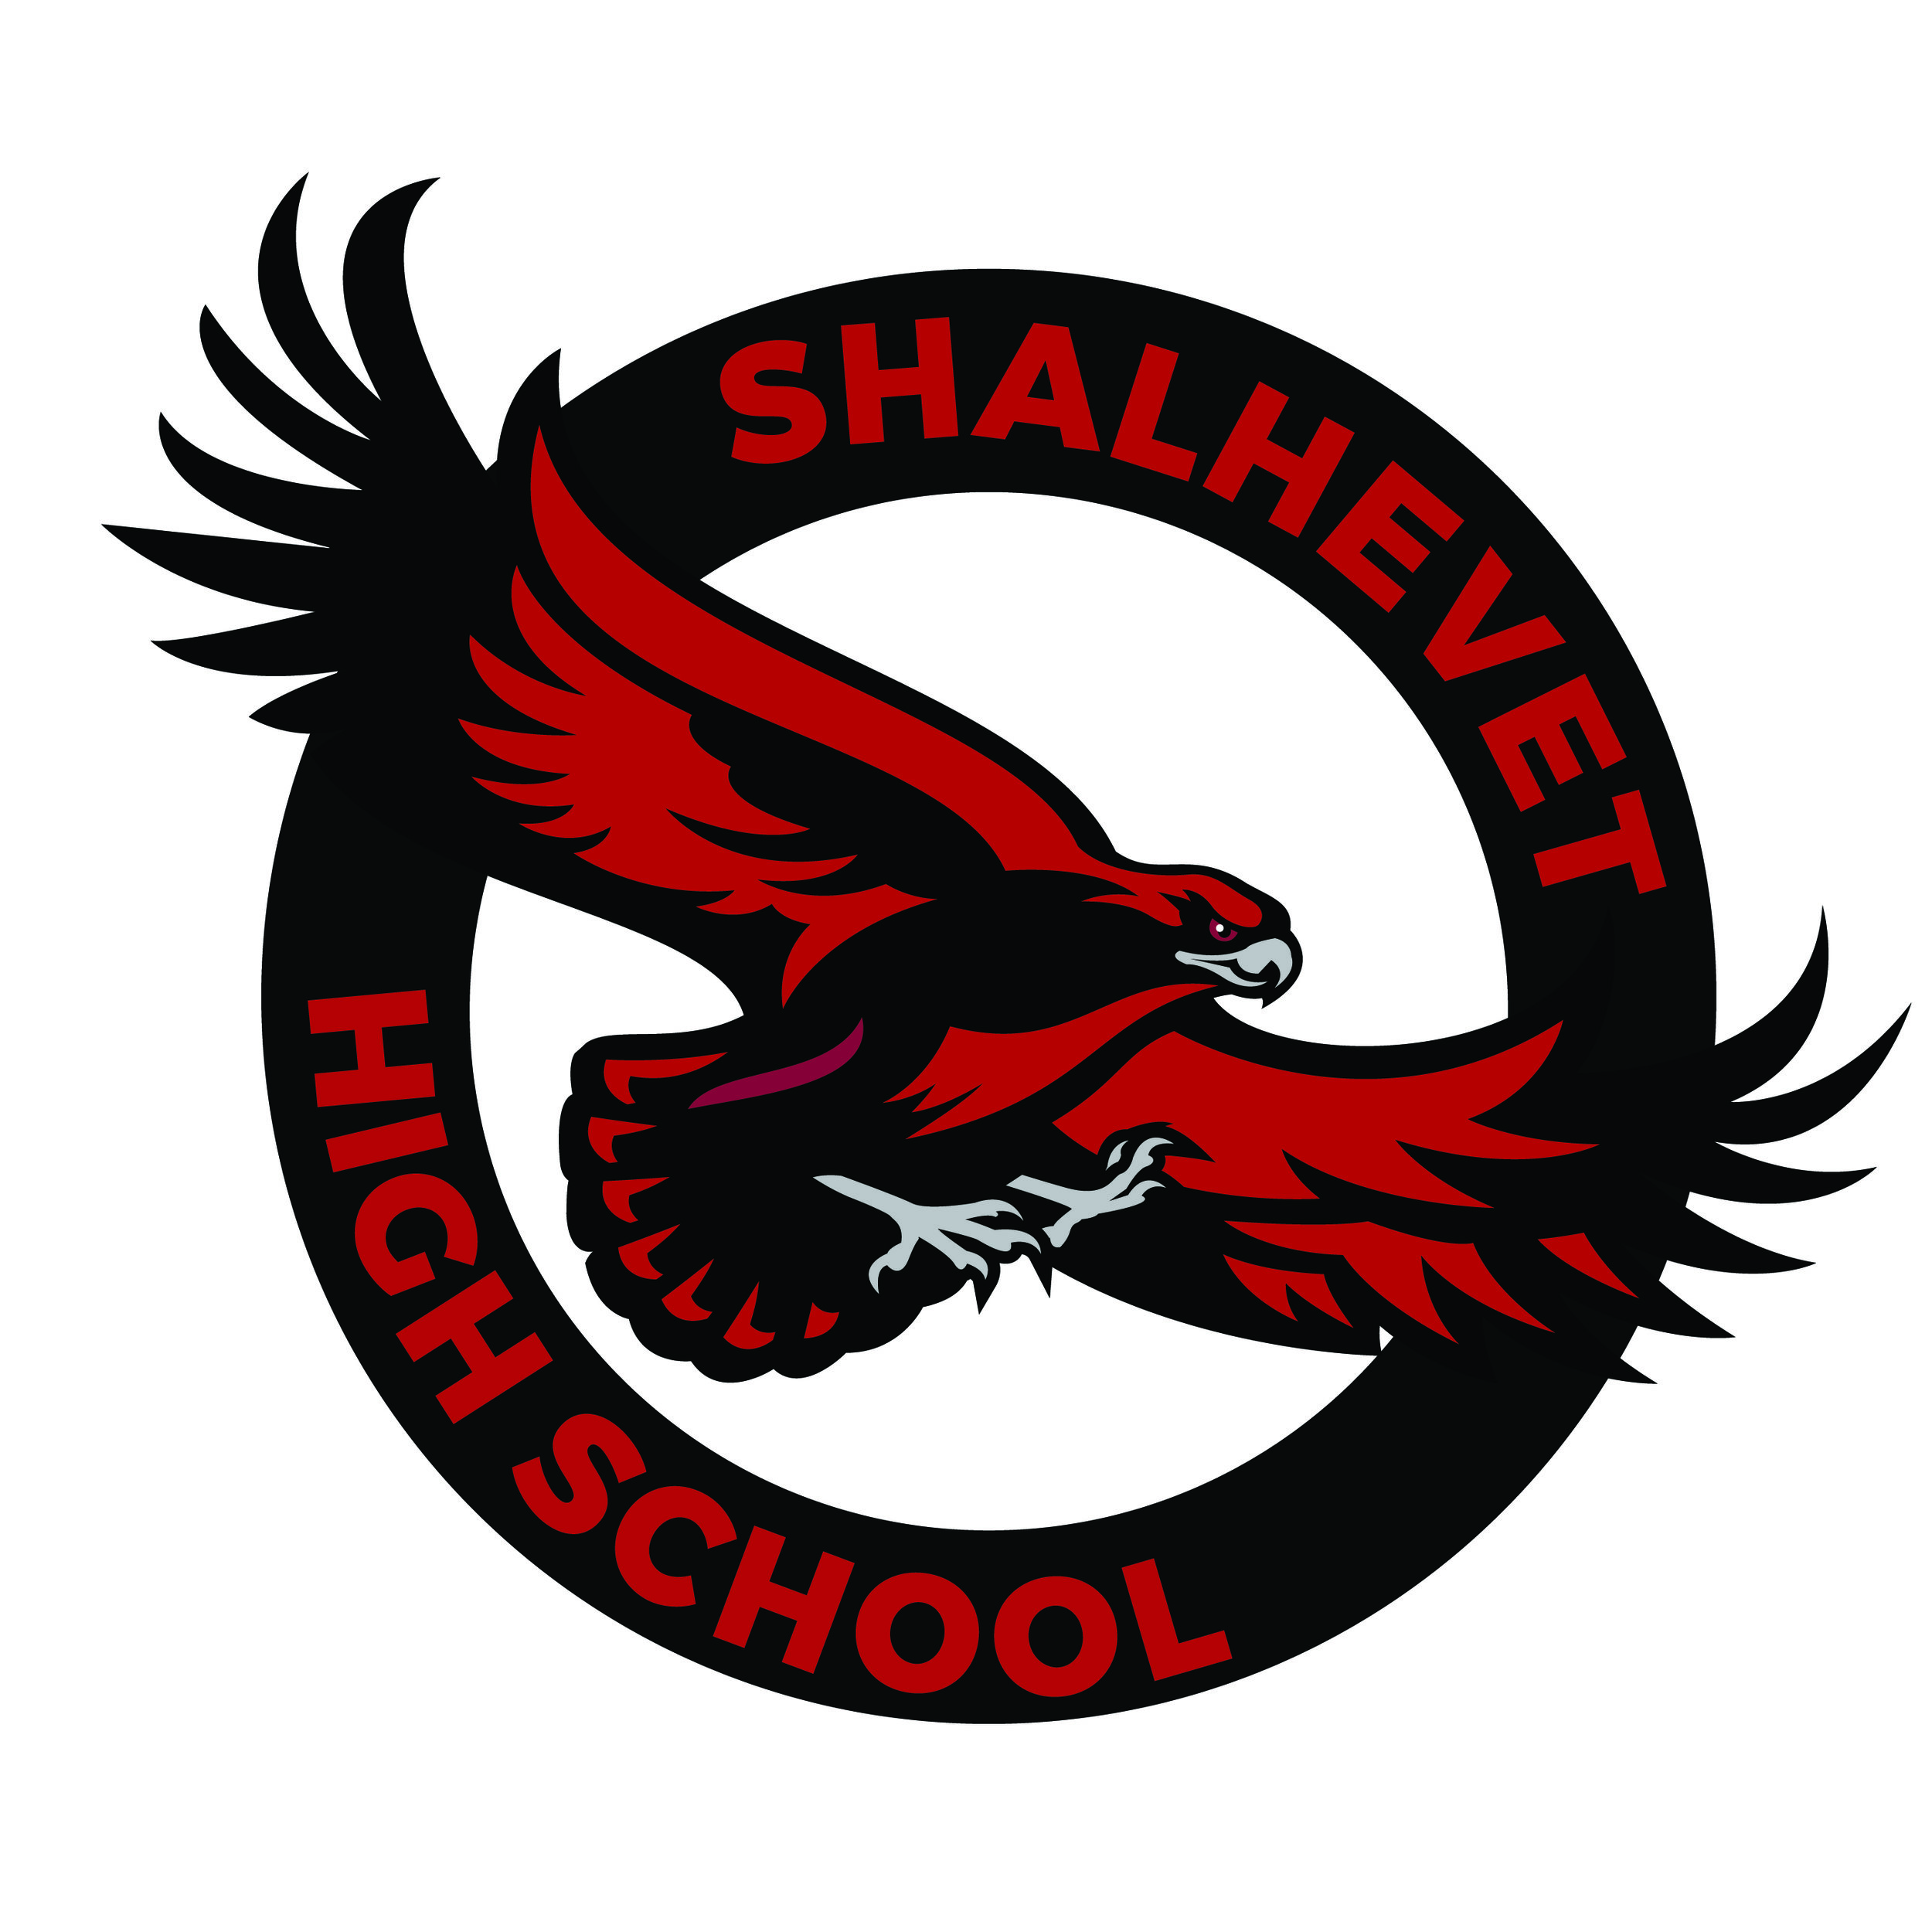 Shalhevet High School, 2018 - Kippah Logo